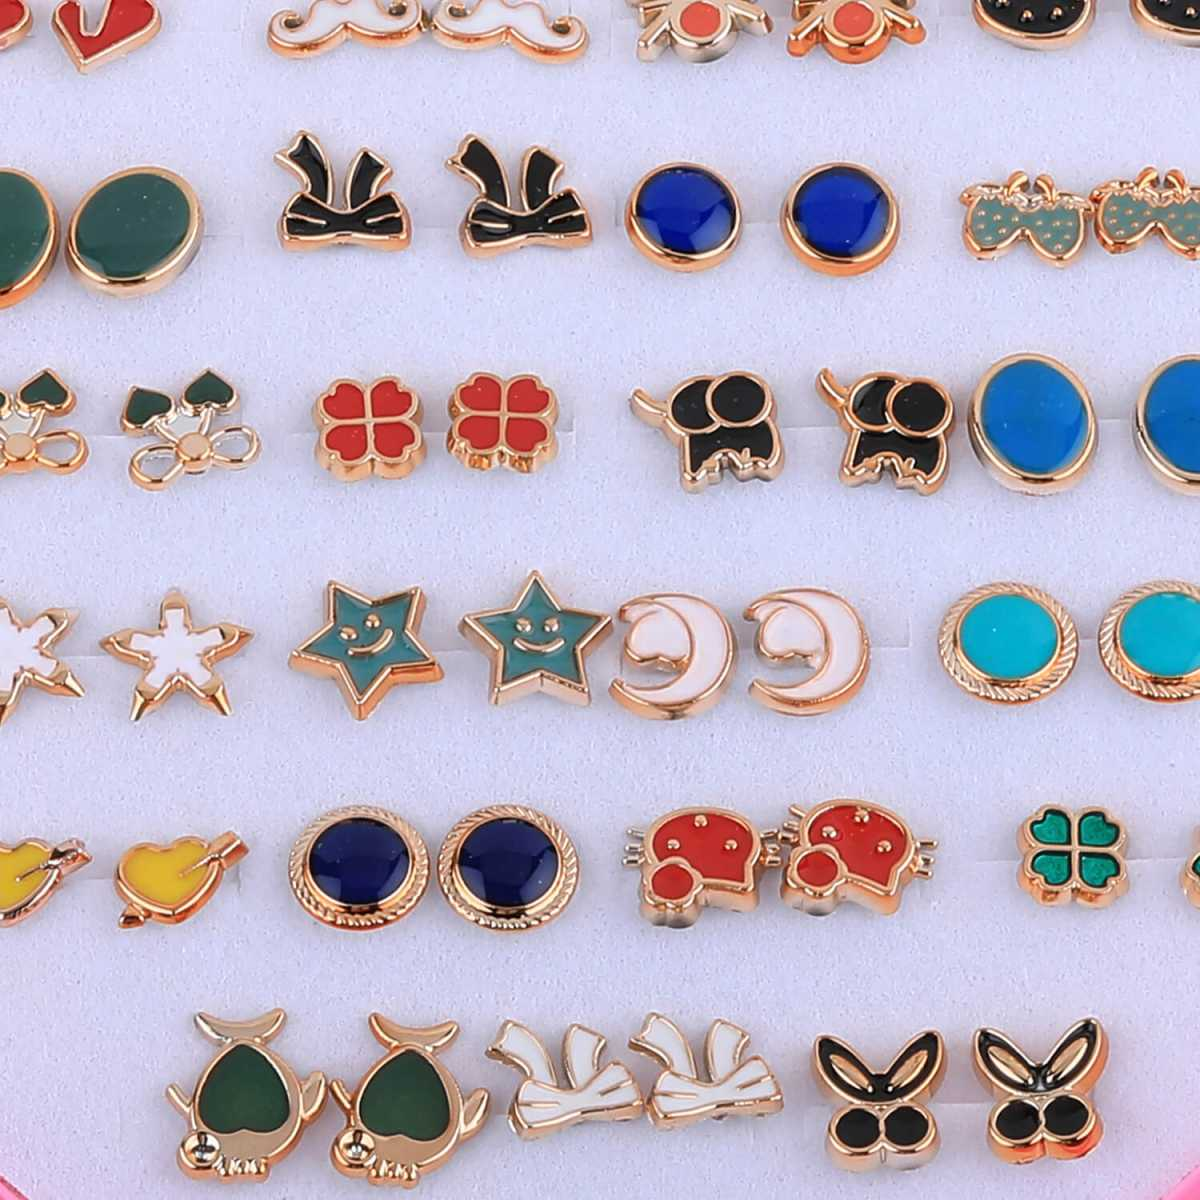 Silver Shine Golden And Multi colour Earring , Set of 36 Earrings for Womens And girls.